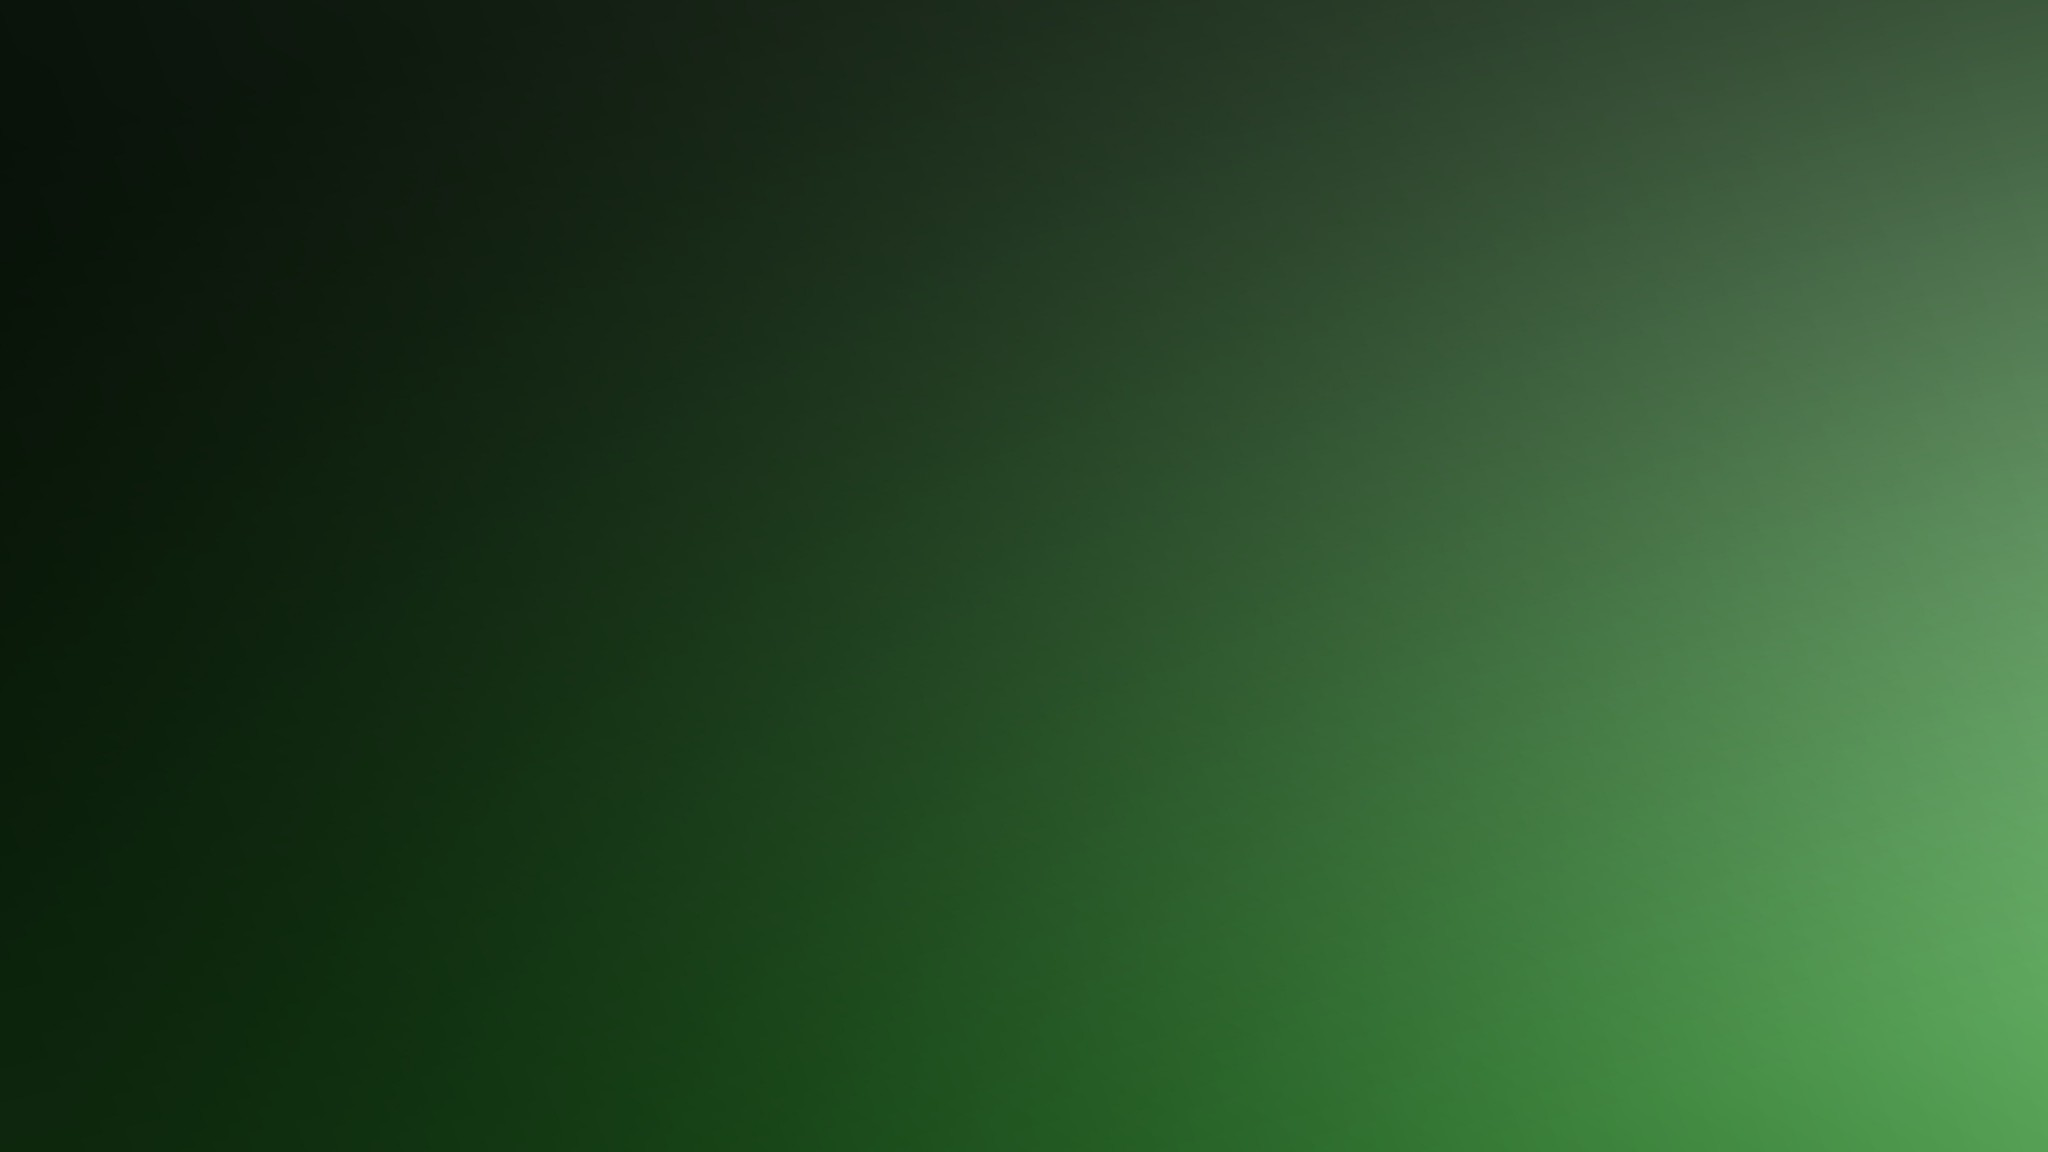 2048x1152 Preview wallpaper green, background, texture, solid, color